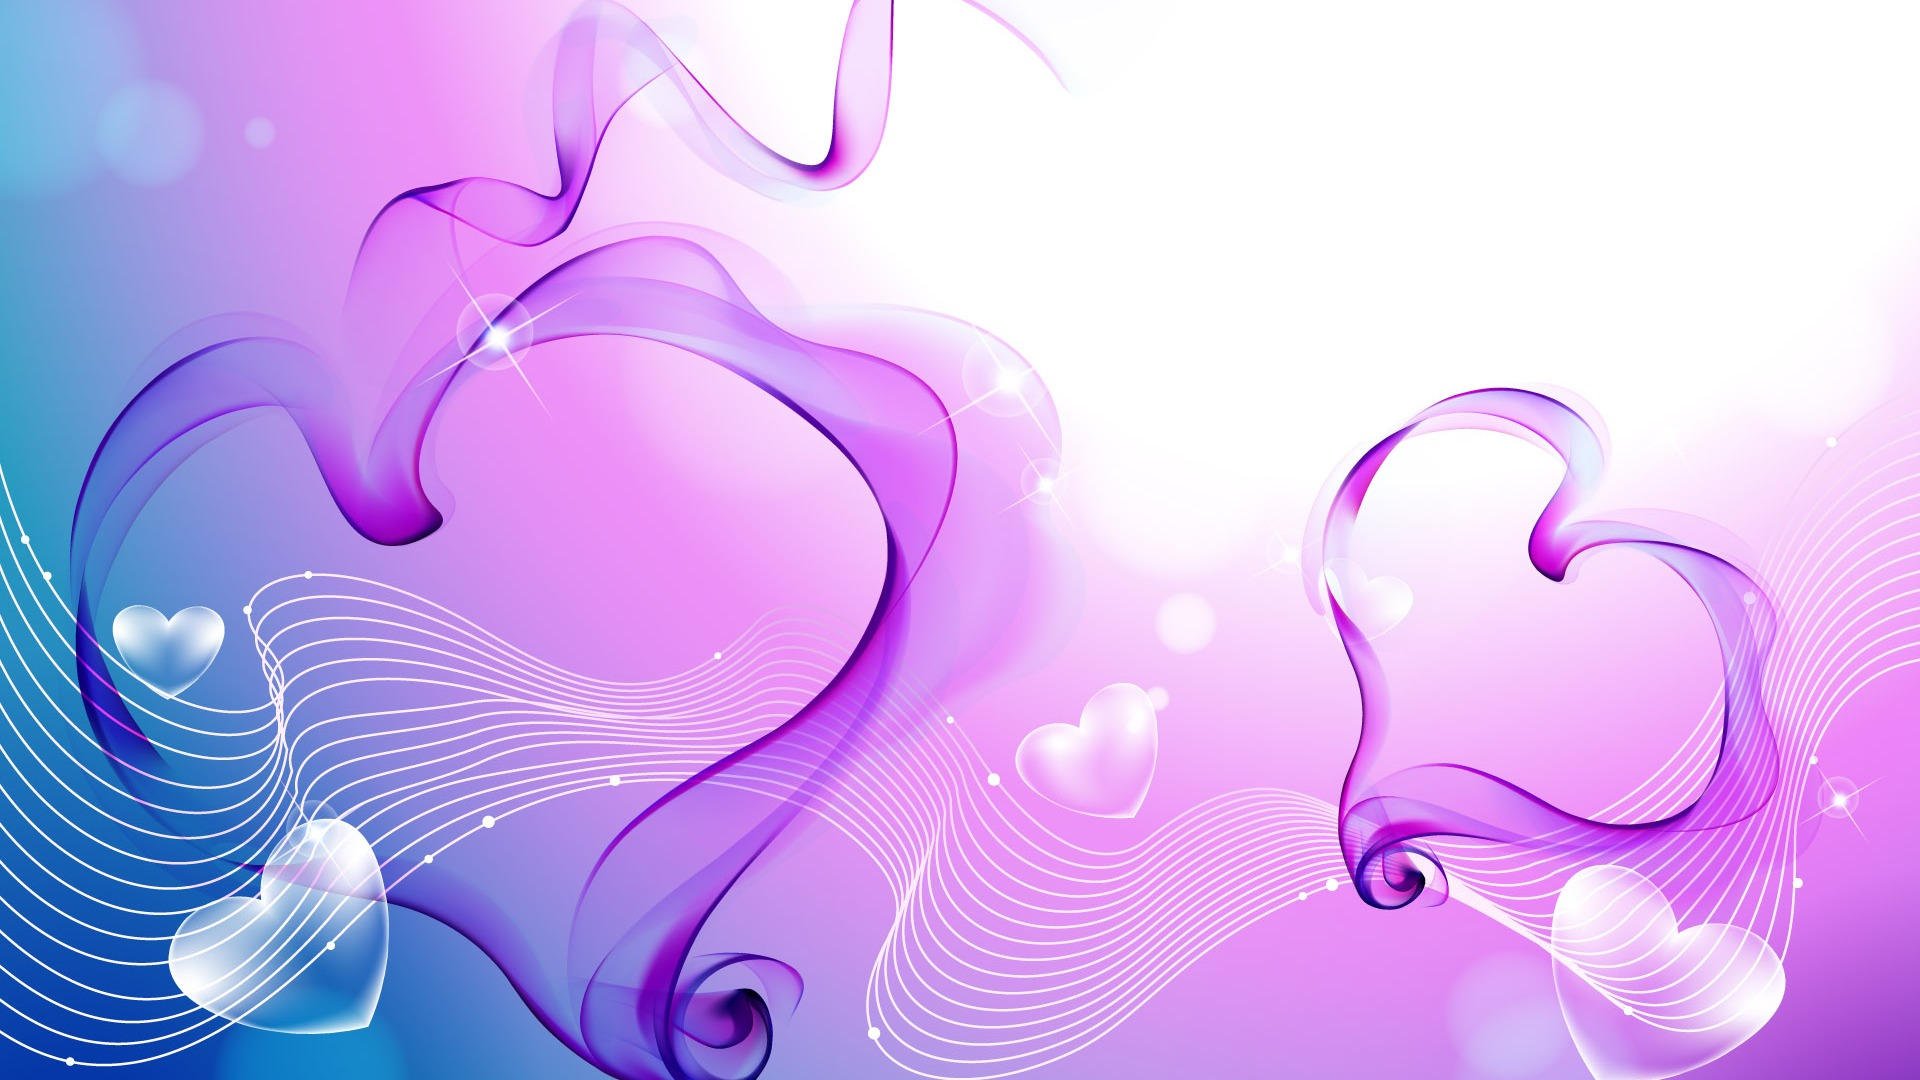 Abstract Love Wallpapers #7041193